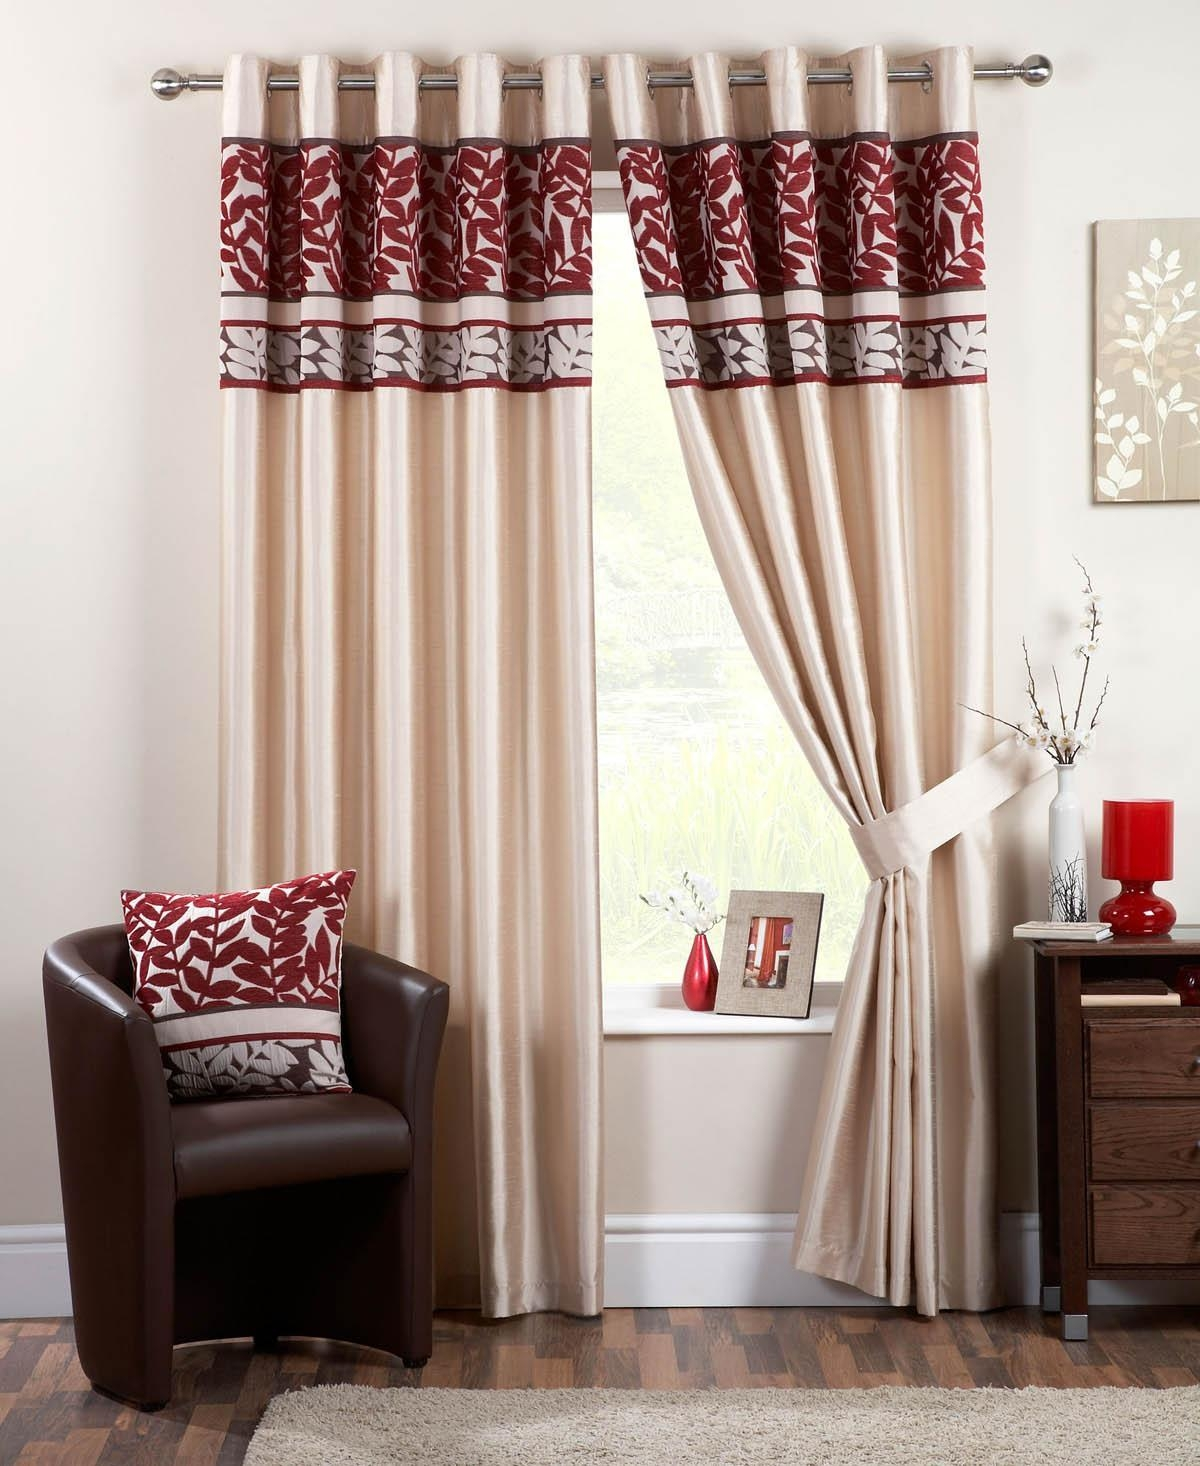 Red Cream Curtains Intended For Lined Cream Curtains (View 10 of 15)